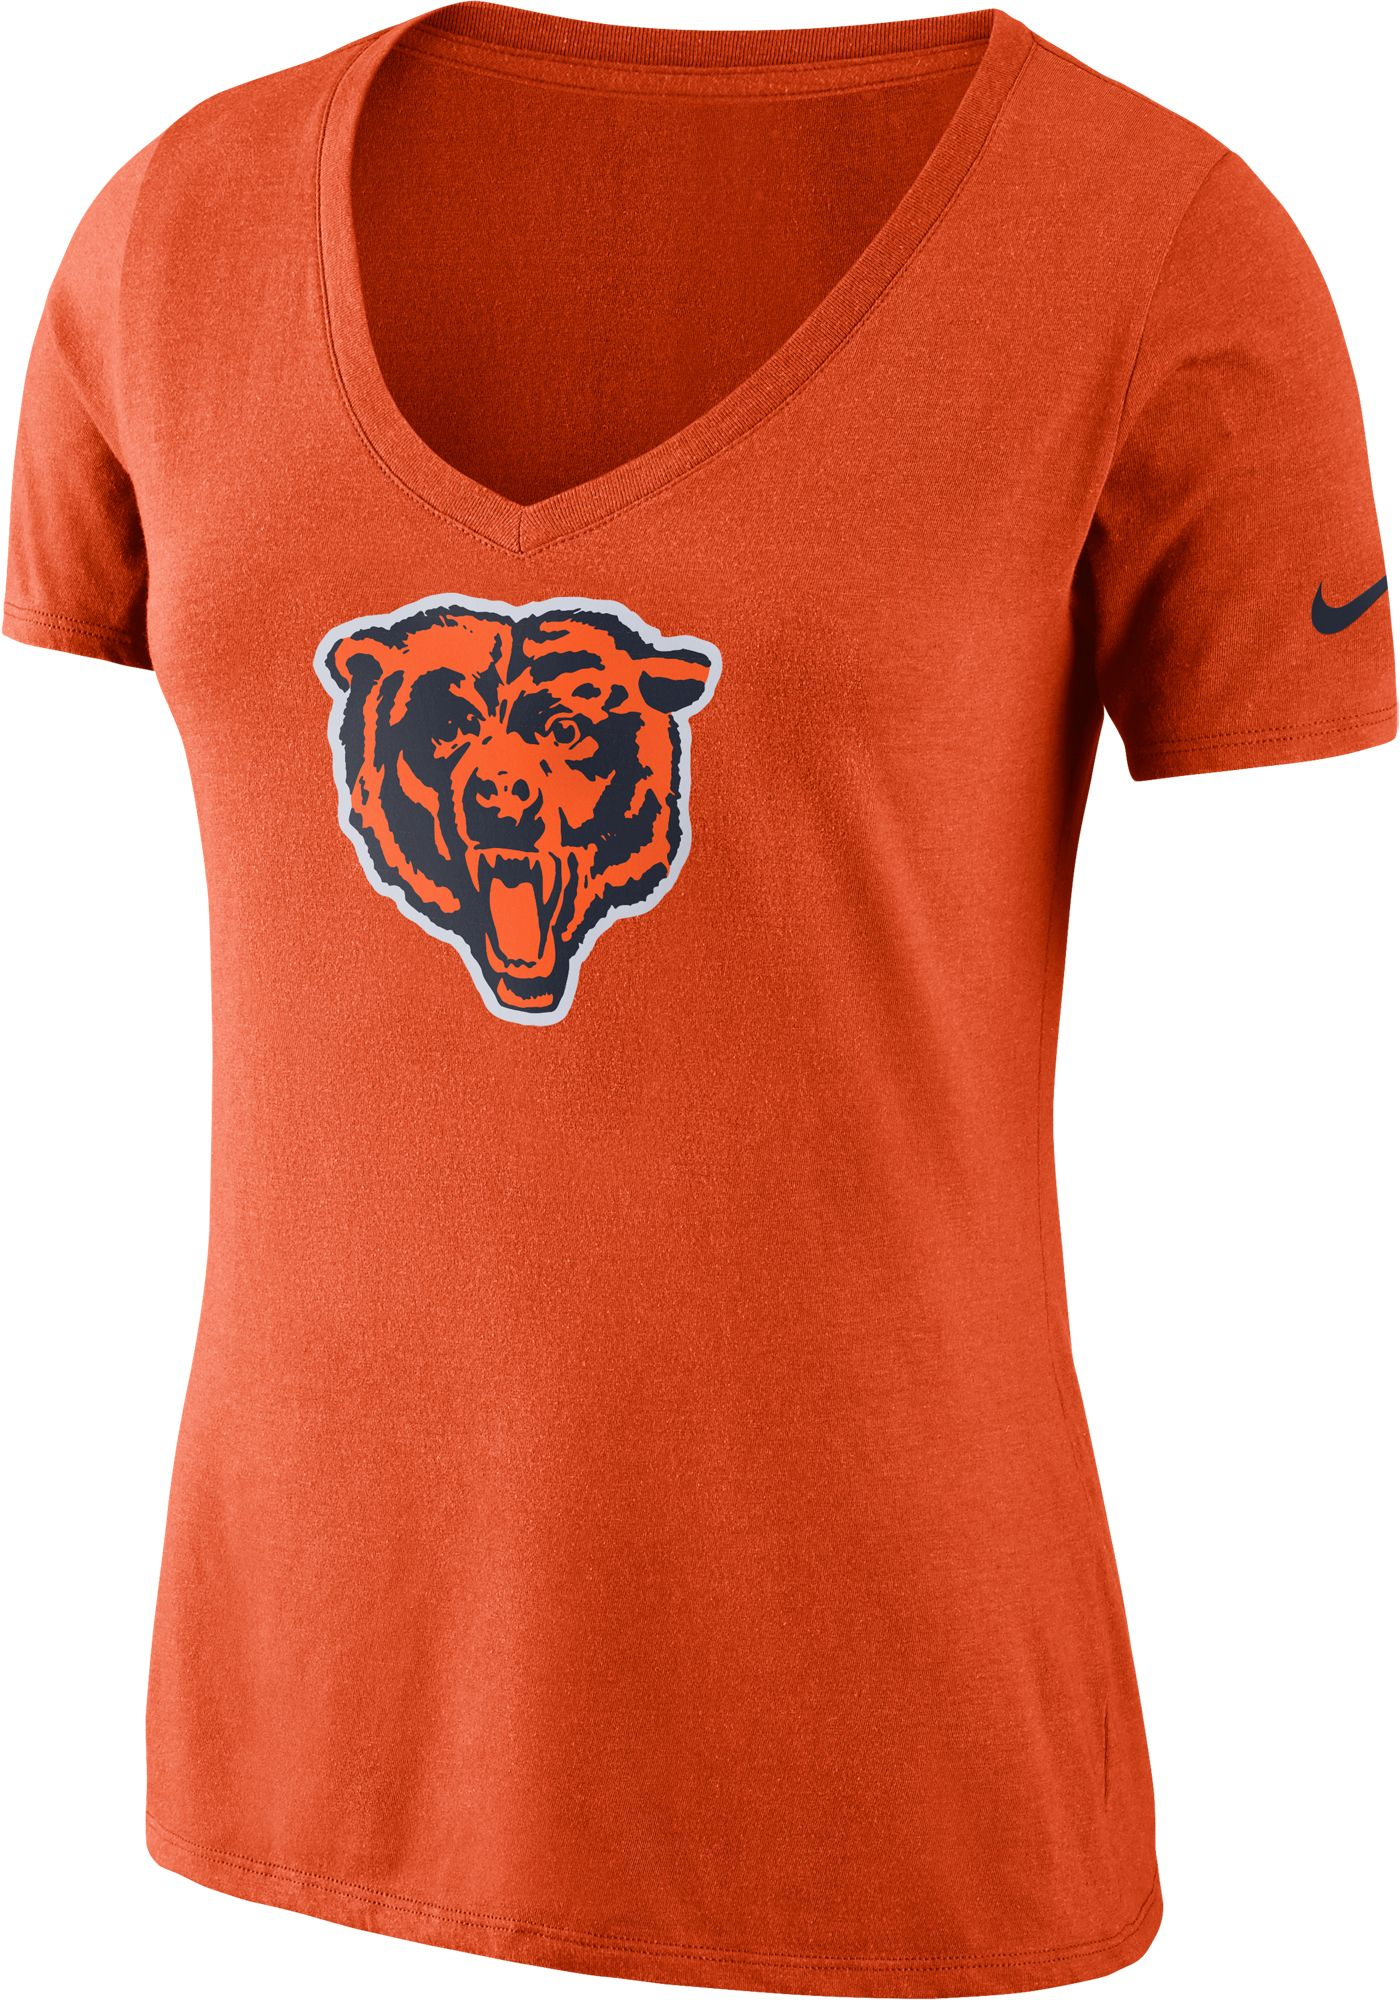 Nike Women's Chicago Bears Tri-Blend Historic Orange T-Shirt